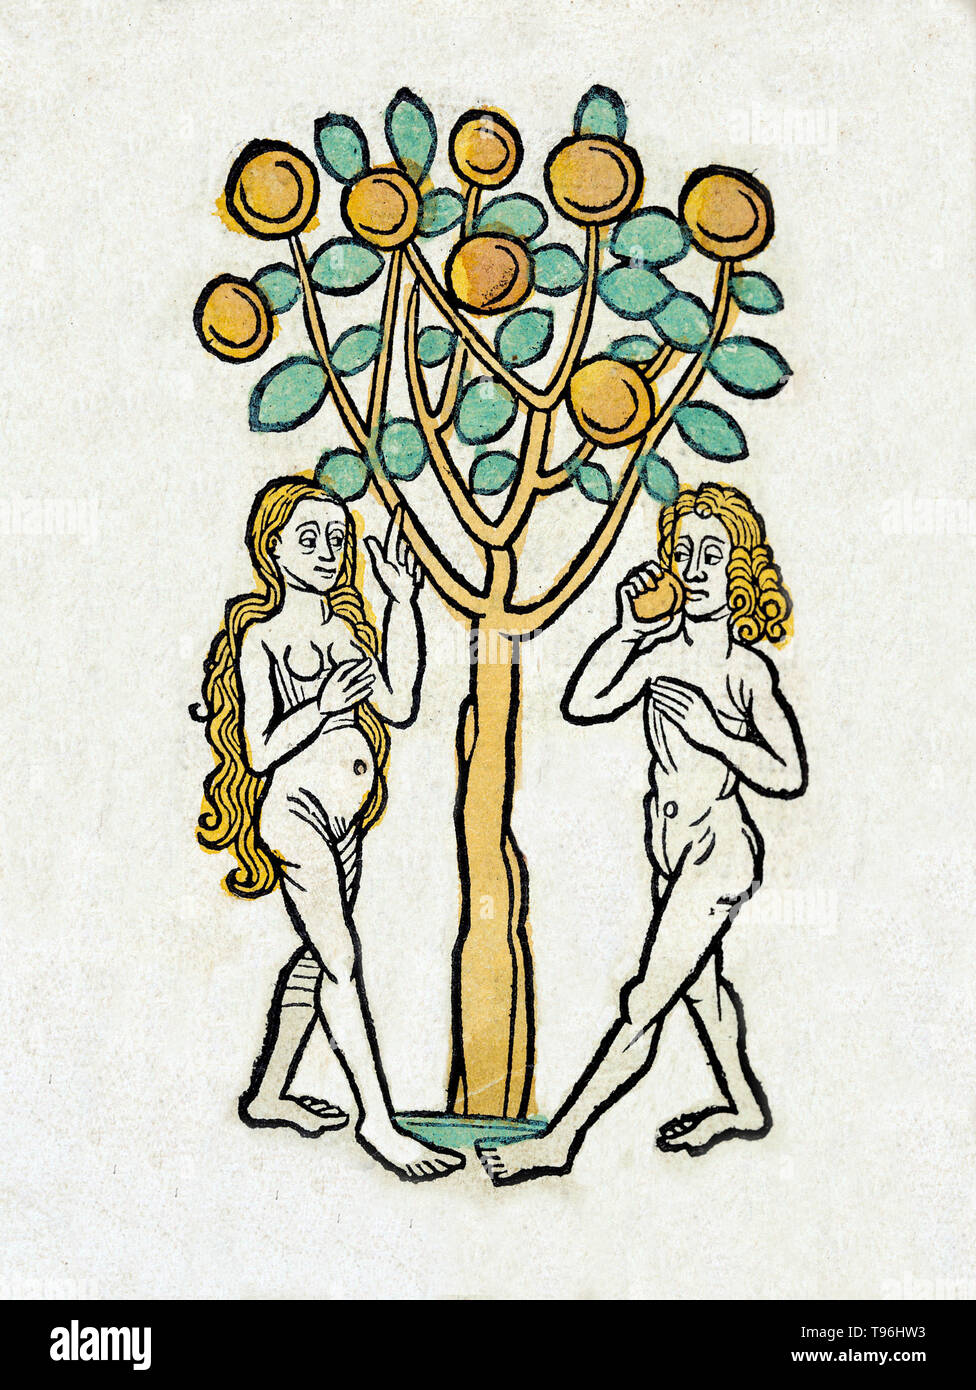 Adam and Eve, according to the creation myth of Abrahamic religions, were the first man and woman. The story of Adam and Eve is central to the belief that God created human beings to live in a Paradise on earth, although they fell away from that state and formed the present world full of suffering and injustice. It provides much of the scriptural basis for the doctrine of Original Sin, an important belief in Christianity, although not shared by Judaism or Islam. The Hortus Sanitatis (Garden of Health), the first natural history encyclopedia, was published by Jacob Meydenbach in Germany, 1491.  - Stock Image